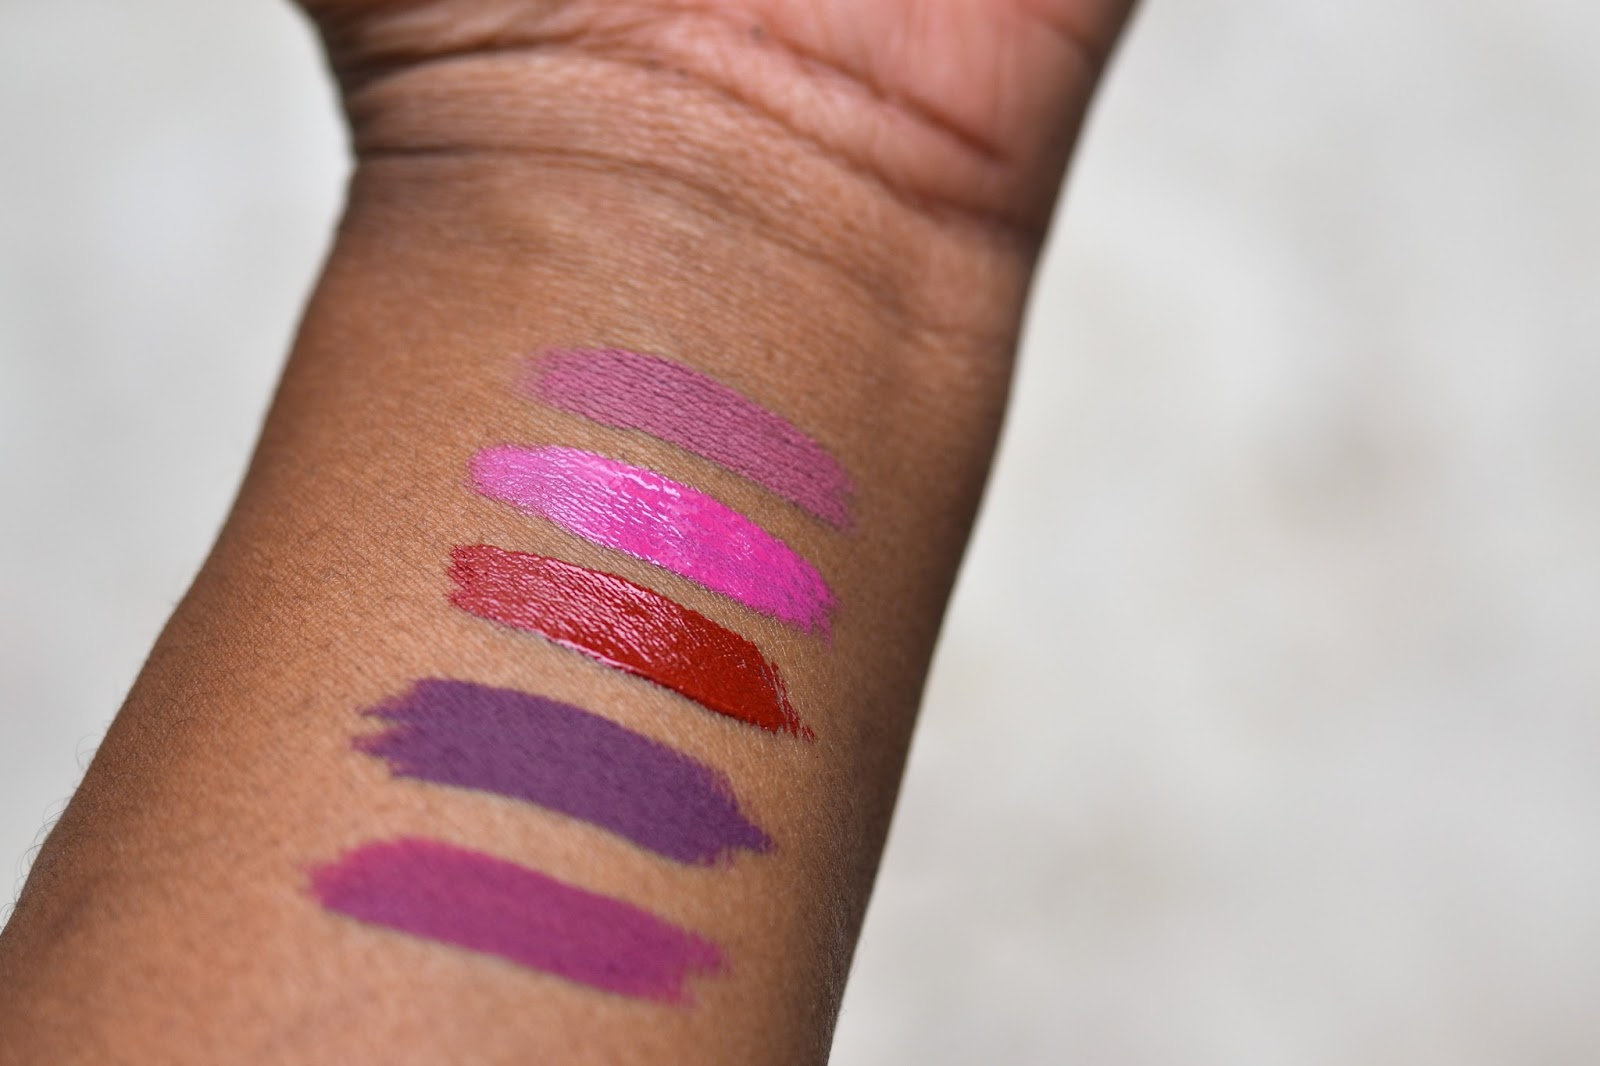 Taos Cosmetics lip swatches